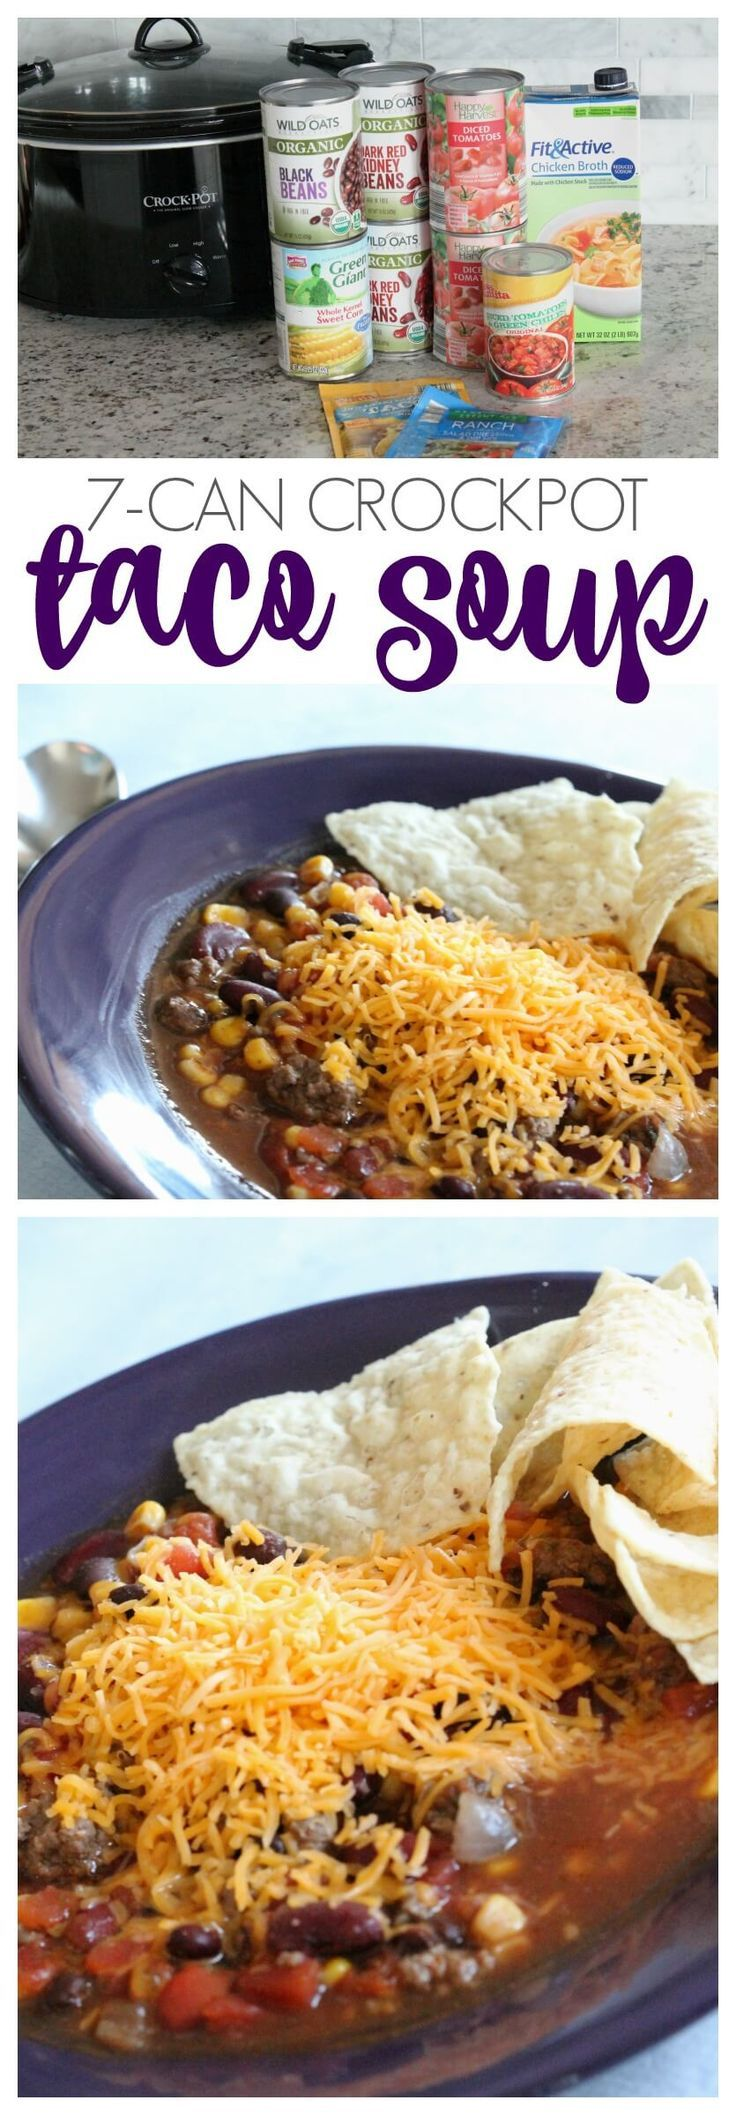 """Taco Soup Recipe! 7-Can Crockpot Recipe for my family """"dump"""" dinner! Dump it in and go - dinner will be ready when you get home!:"""